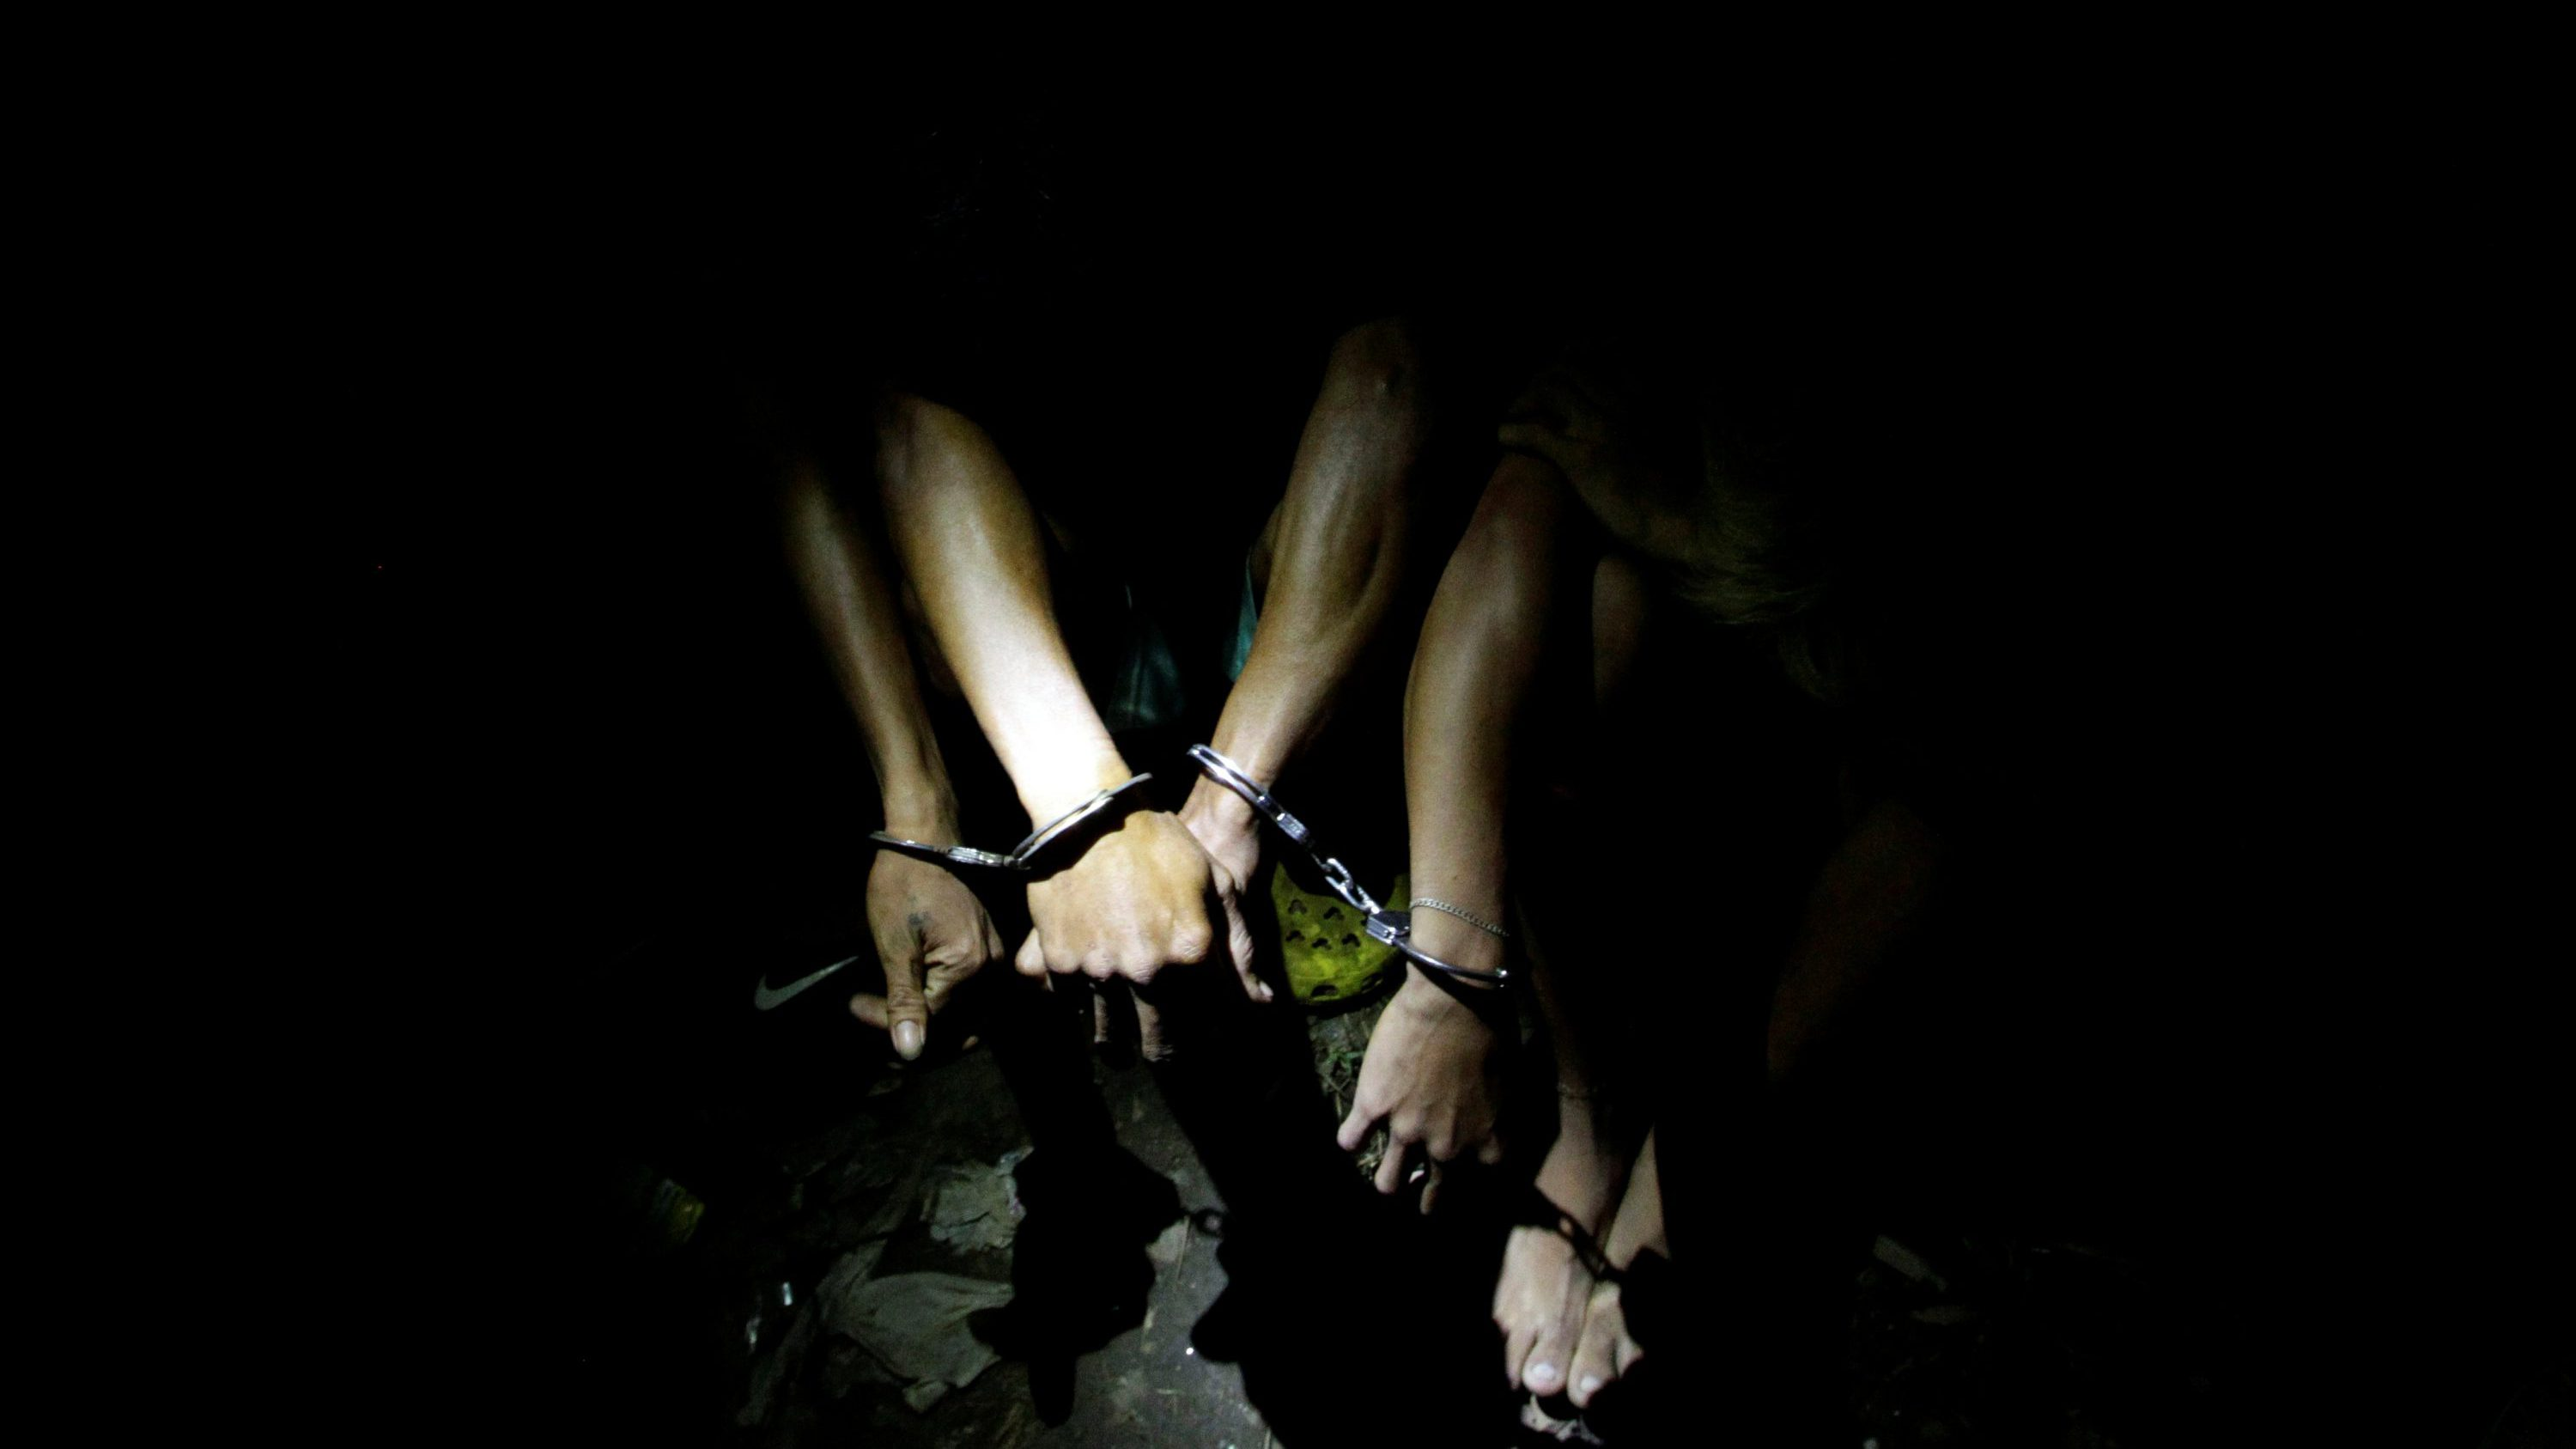 Men are handcuffed after they were detained by police during a police anti-illegal drugs operation in Quezon city, Metro Manila, Philippines November 9, 2016. Picture taken November 9, 2016.